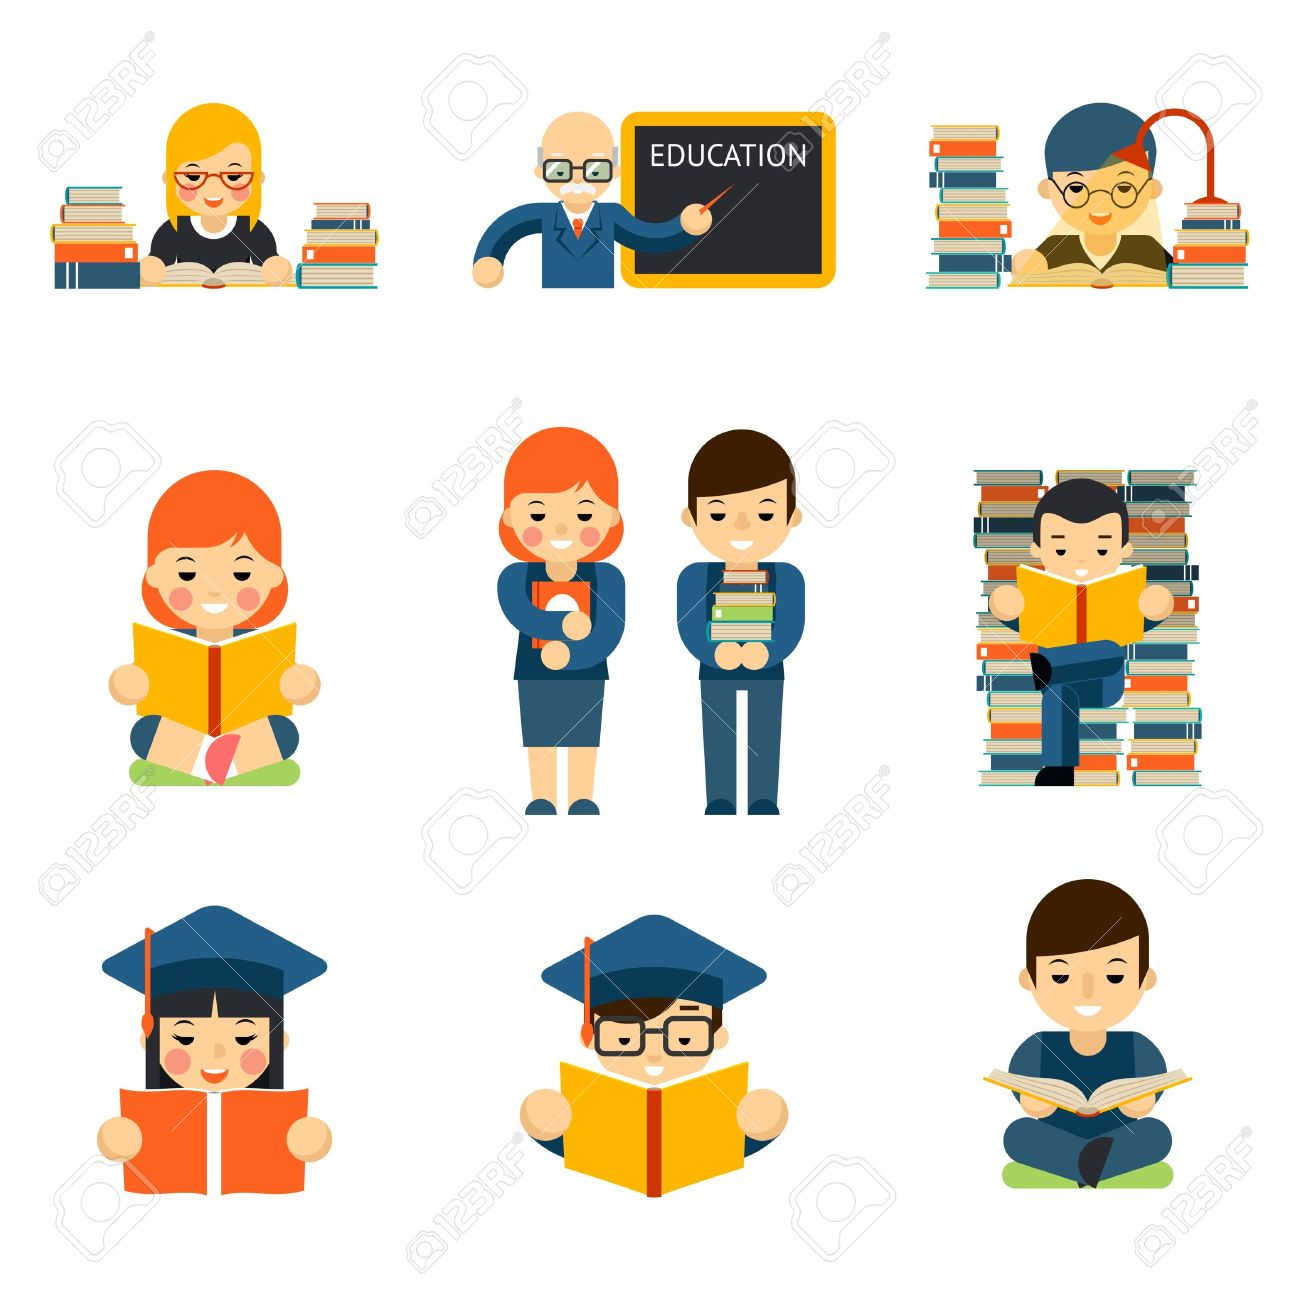 Clipart 100 people study svg Study Stock Photos & Pictures. Royalty Free Study Images And Stock ... svg